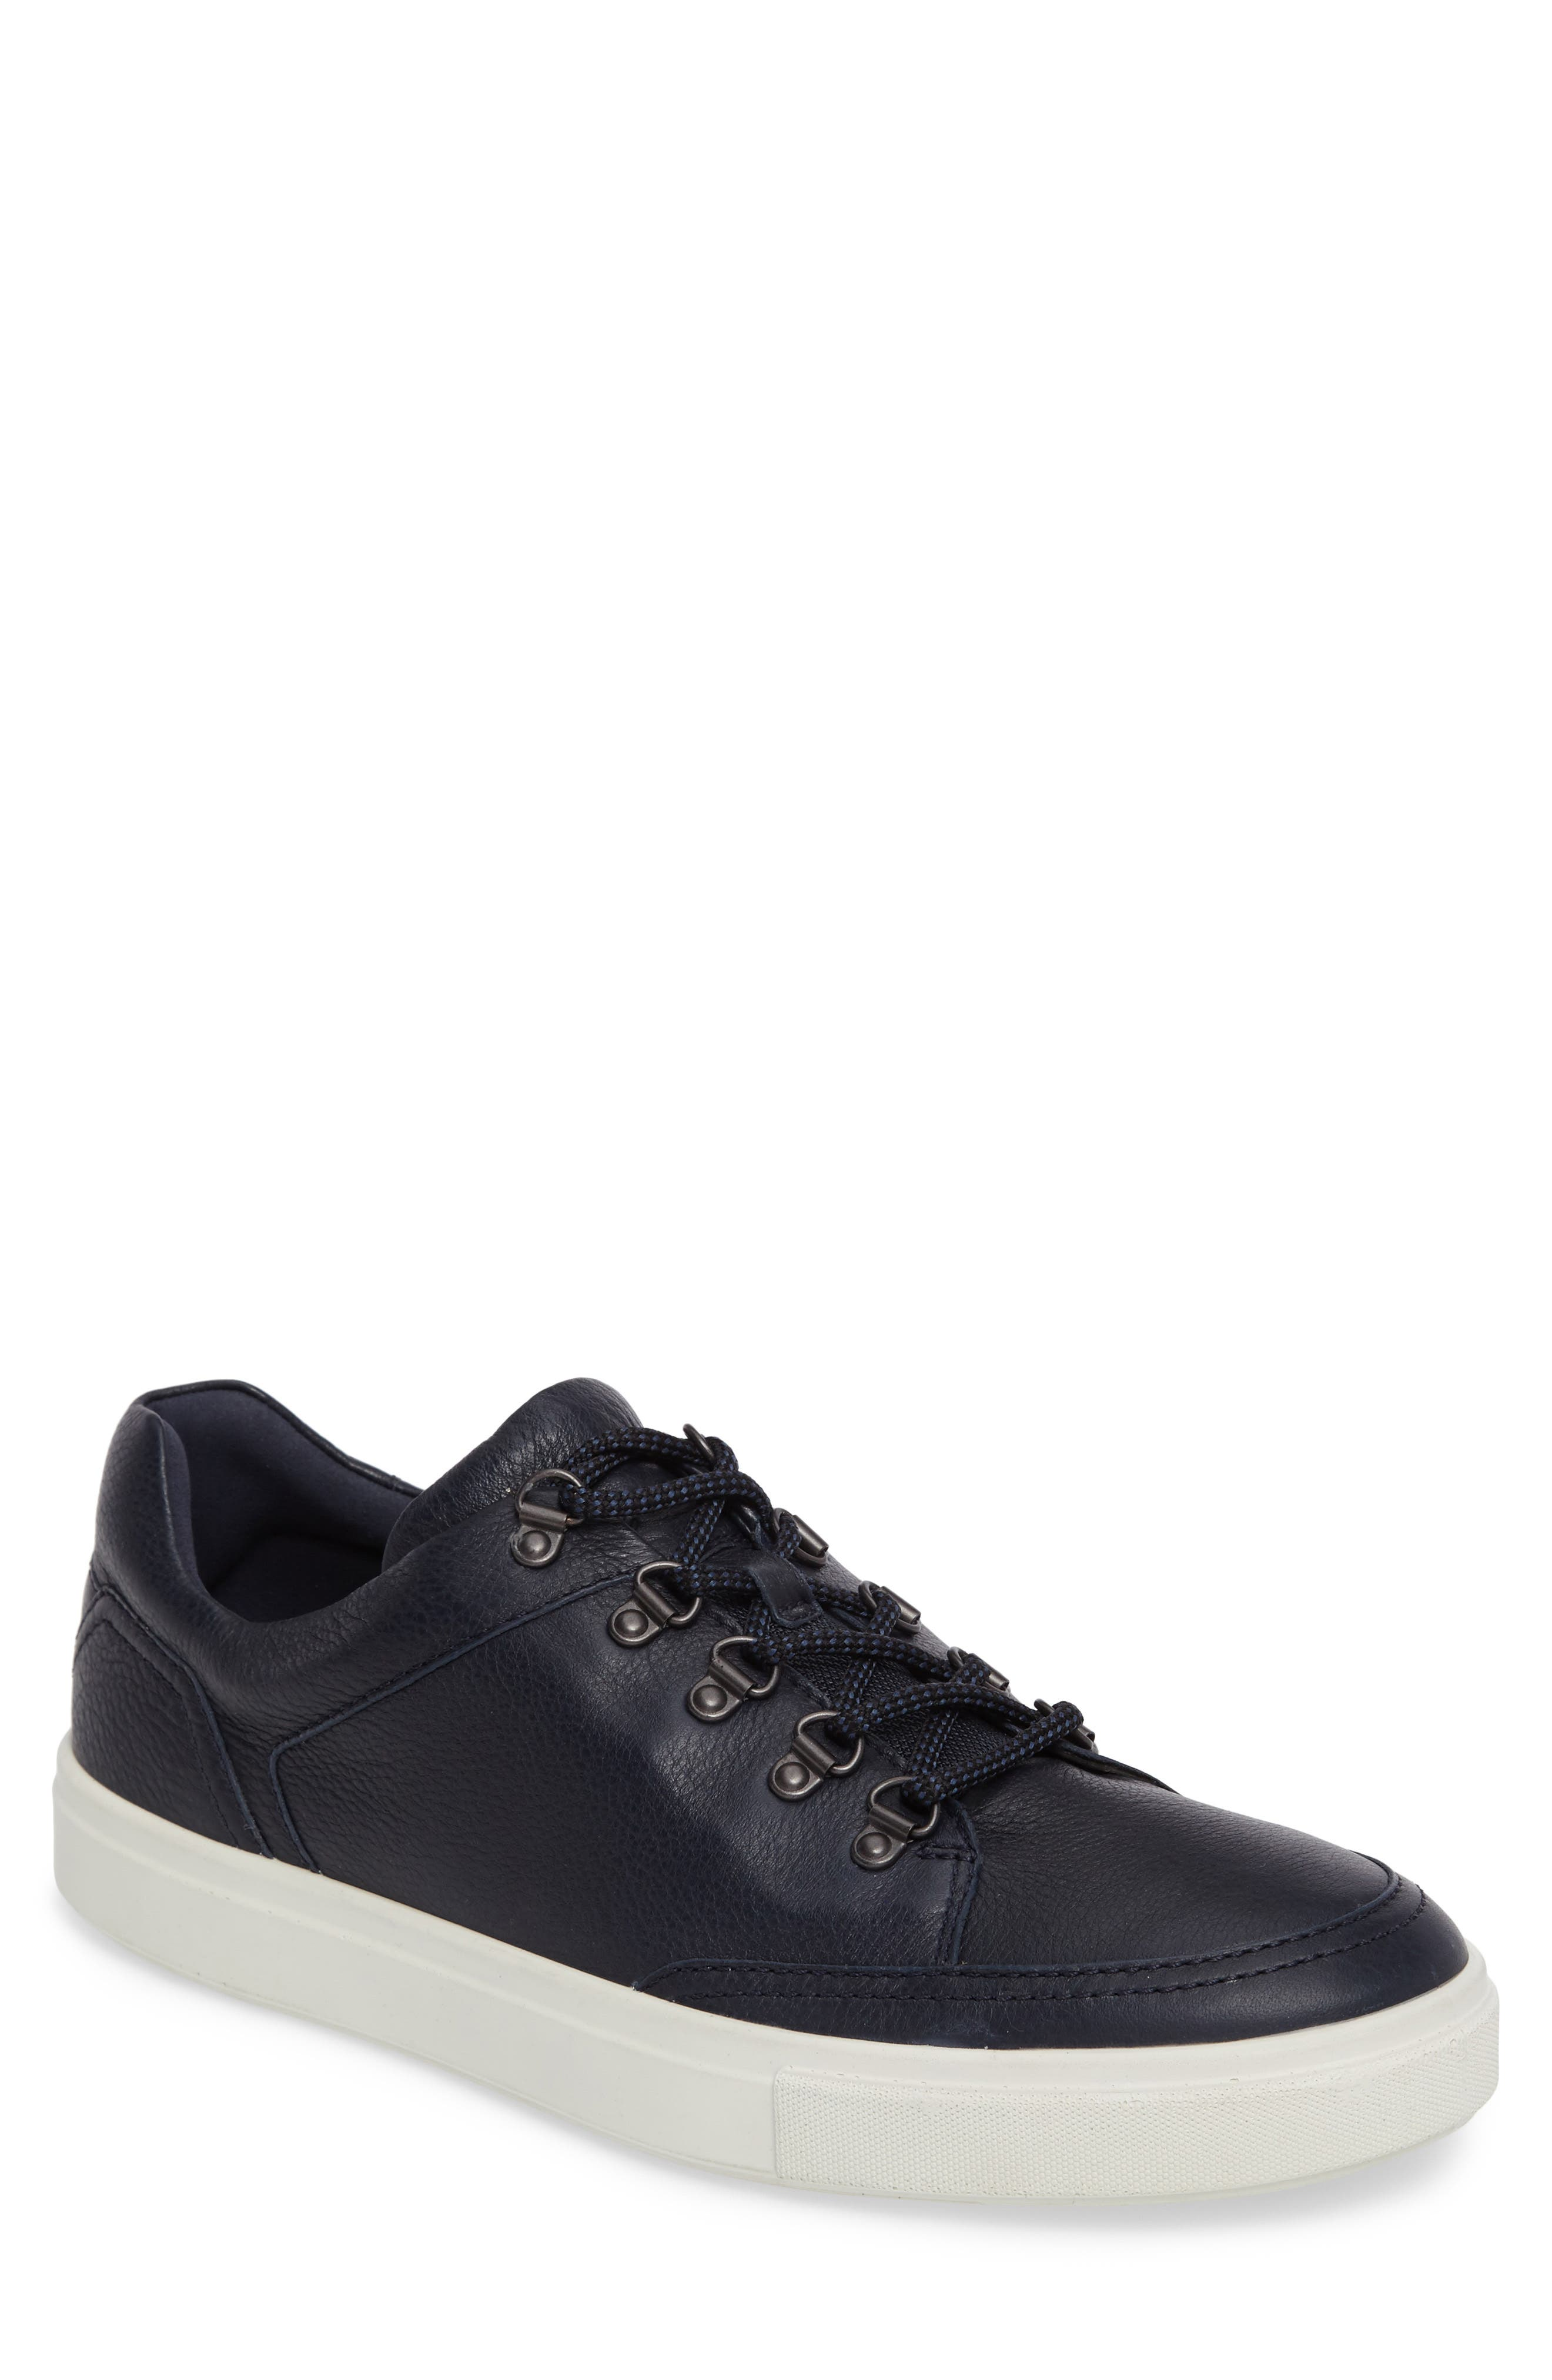 Kyle Sneaker,                         Main,                         color, Marine Leather